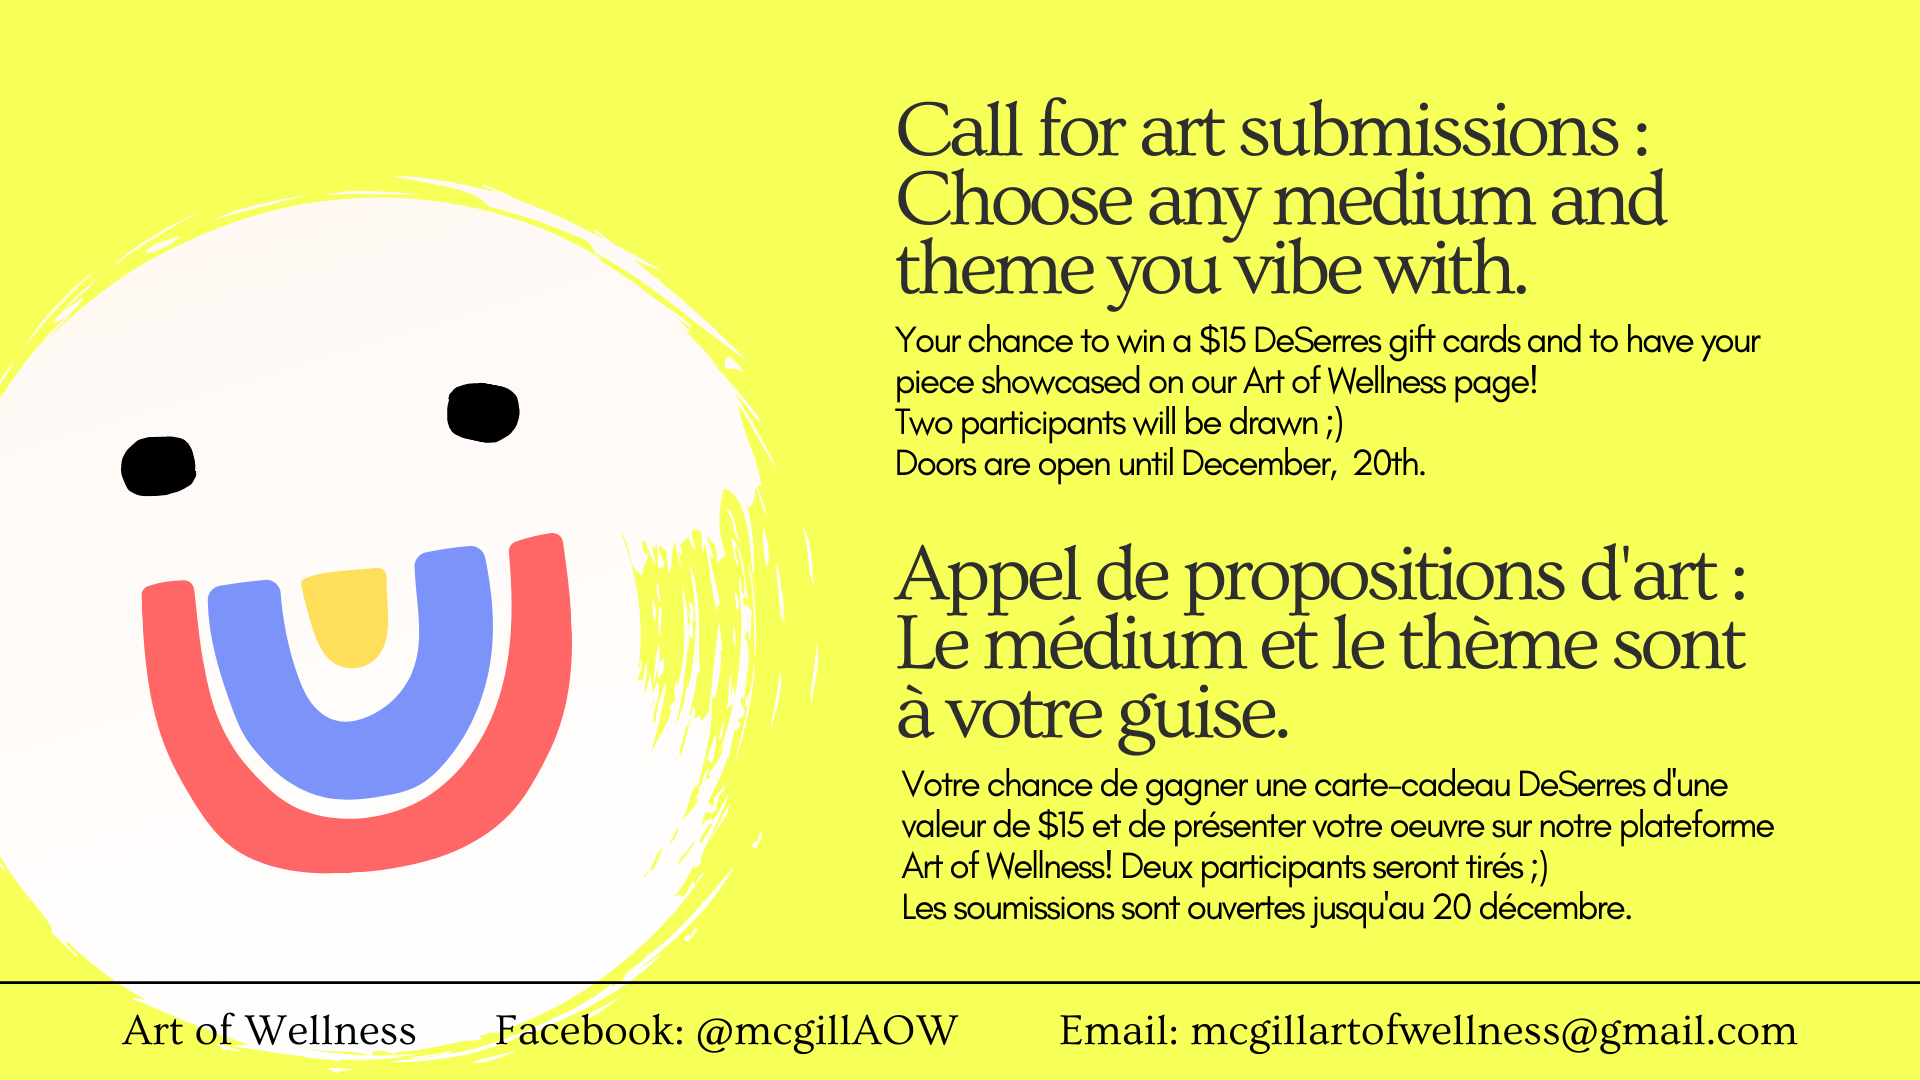 Call for Art Submissions